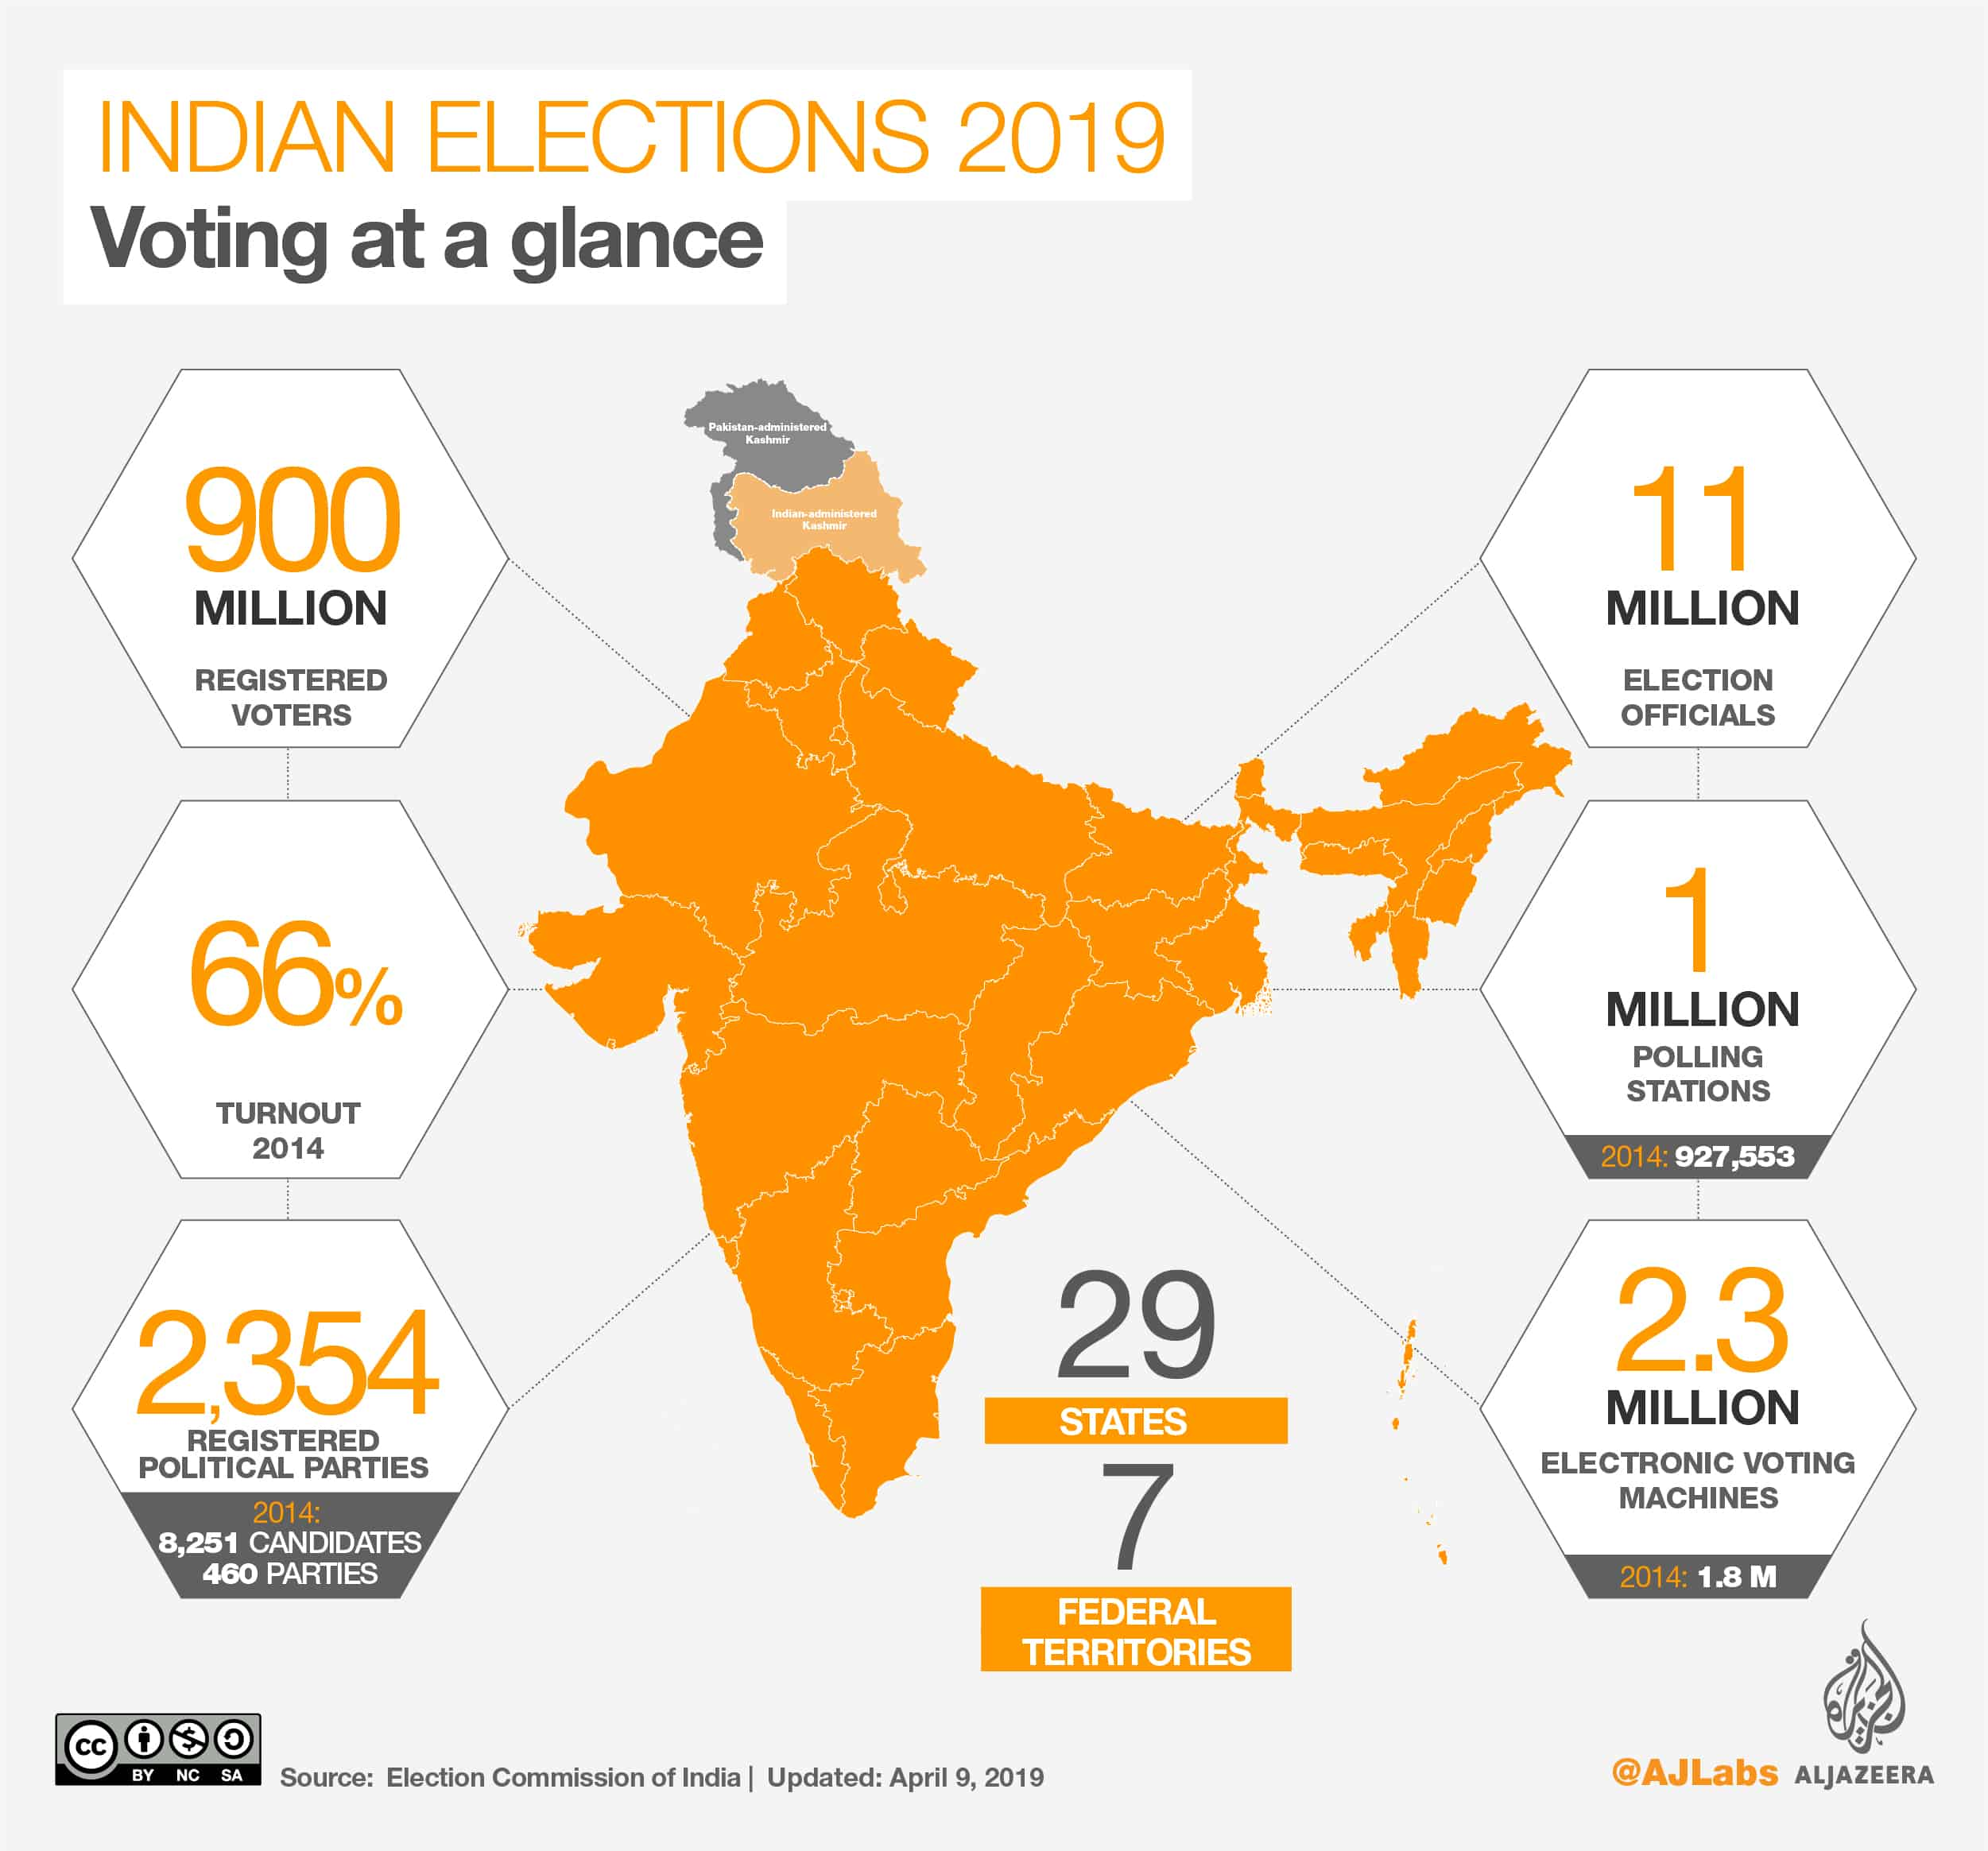 Indian Elections 2019 - Facts and Figures